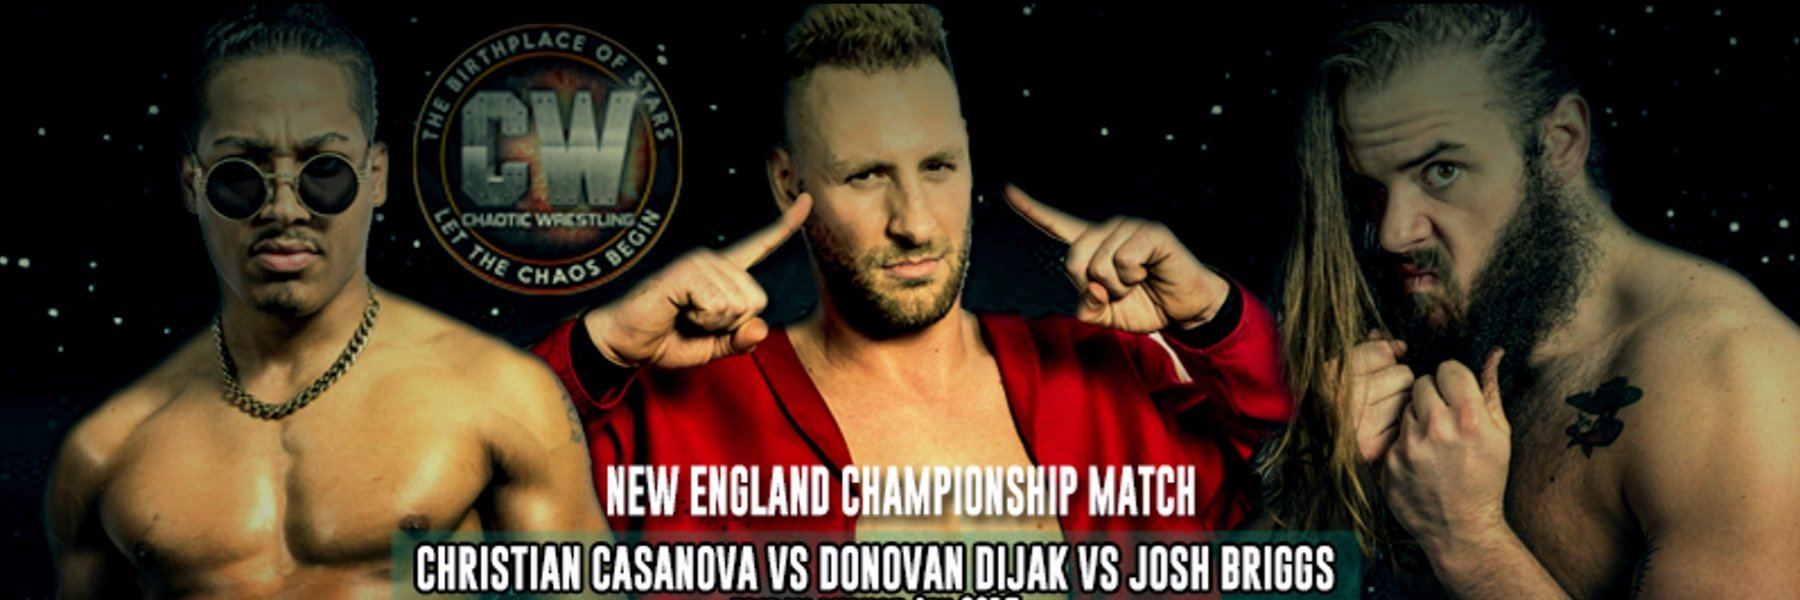 WATCH DONOVAN DIJACK'S FINAL CHAOTIC WRESTLING MATCH HERE!